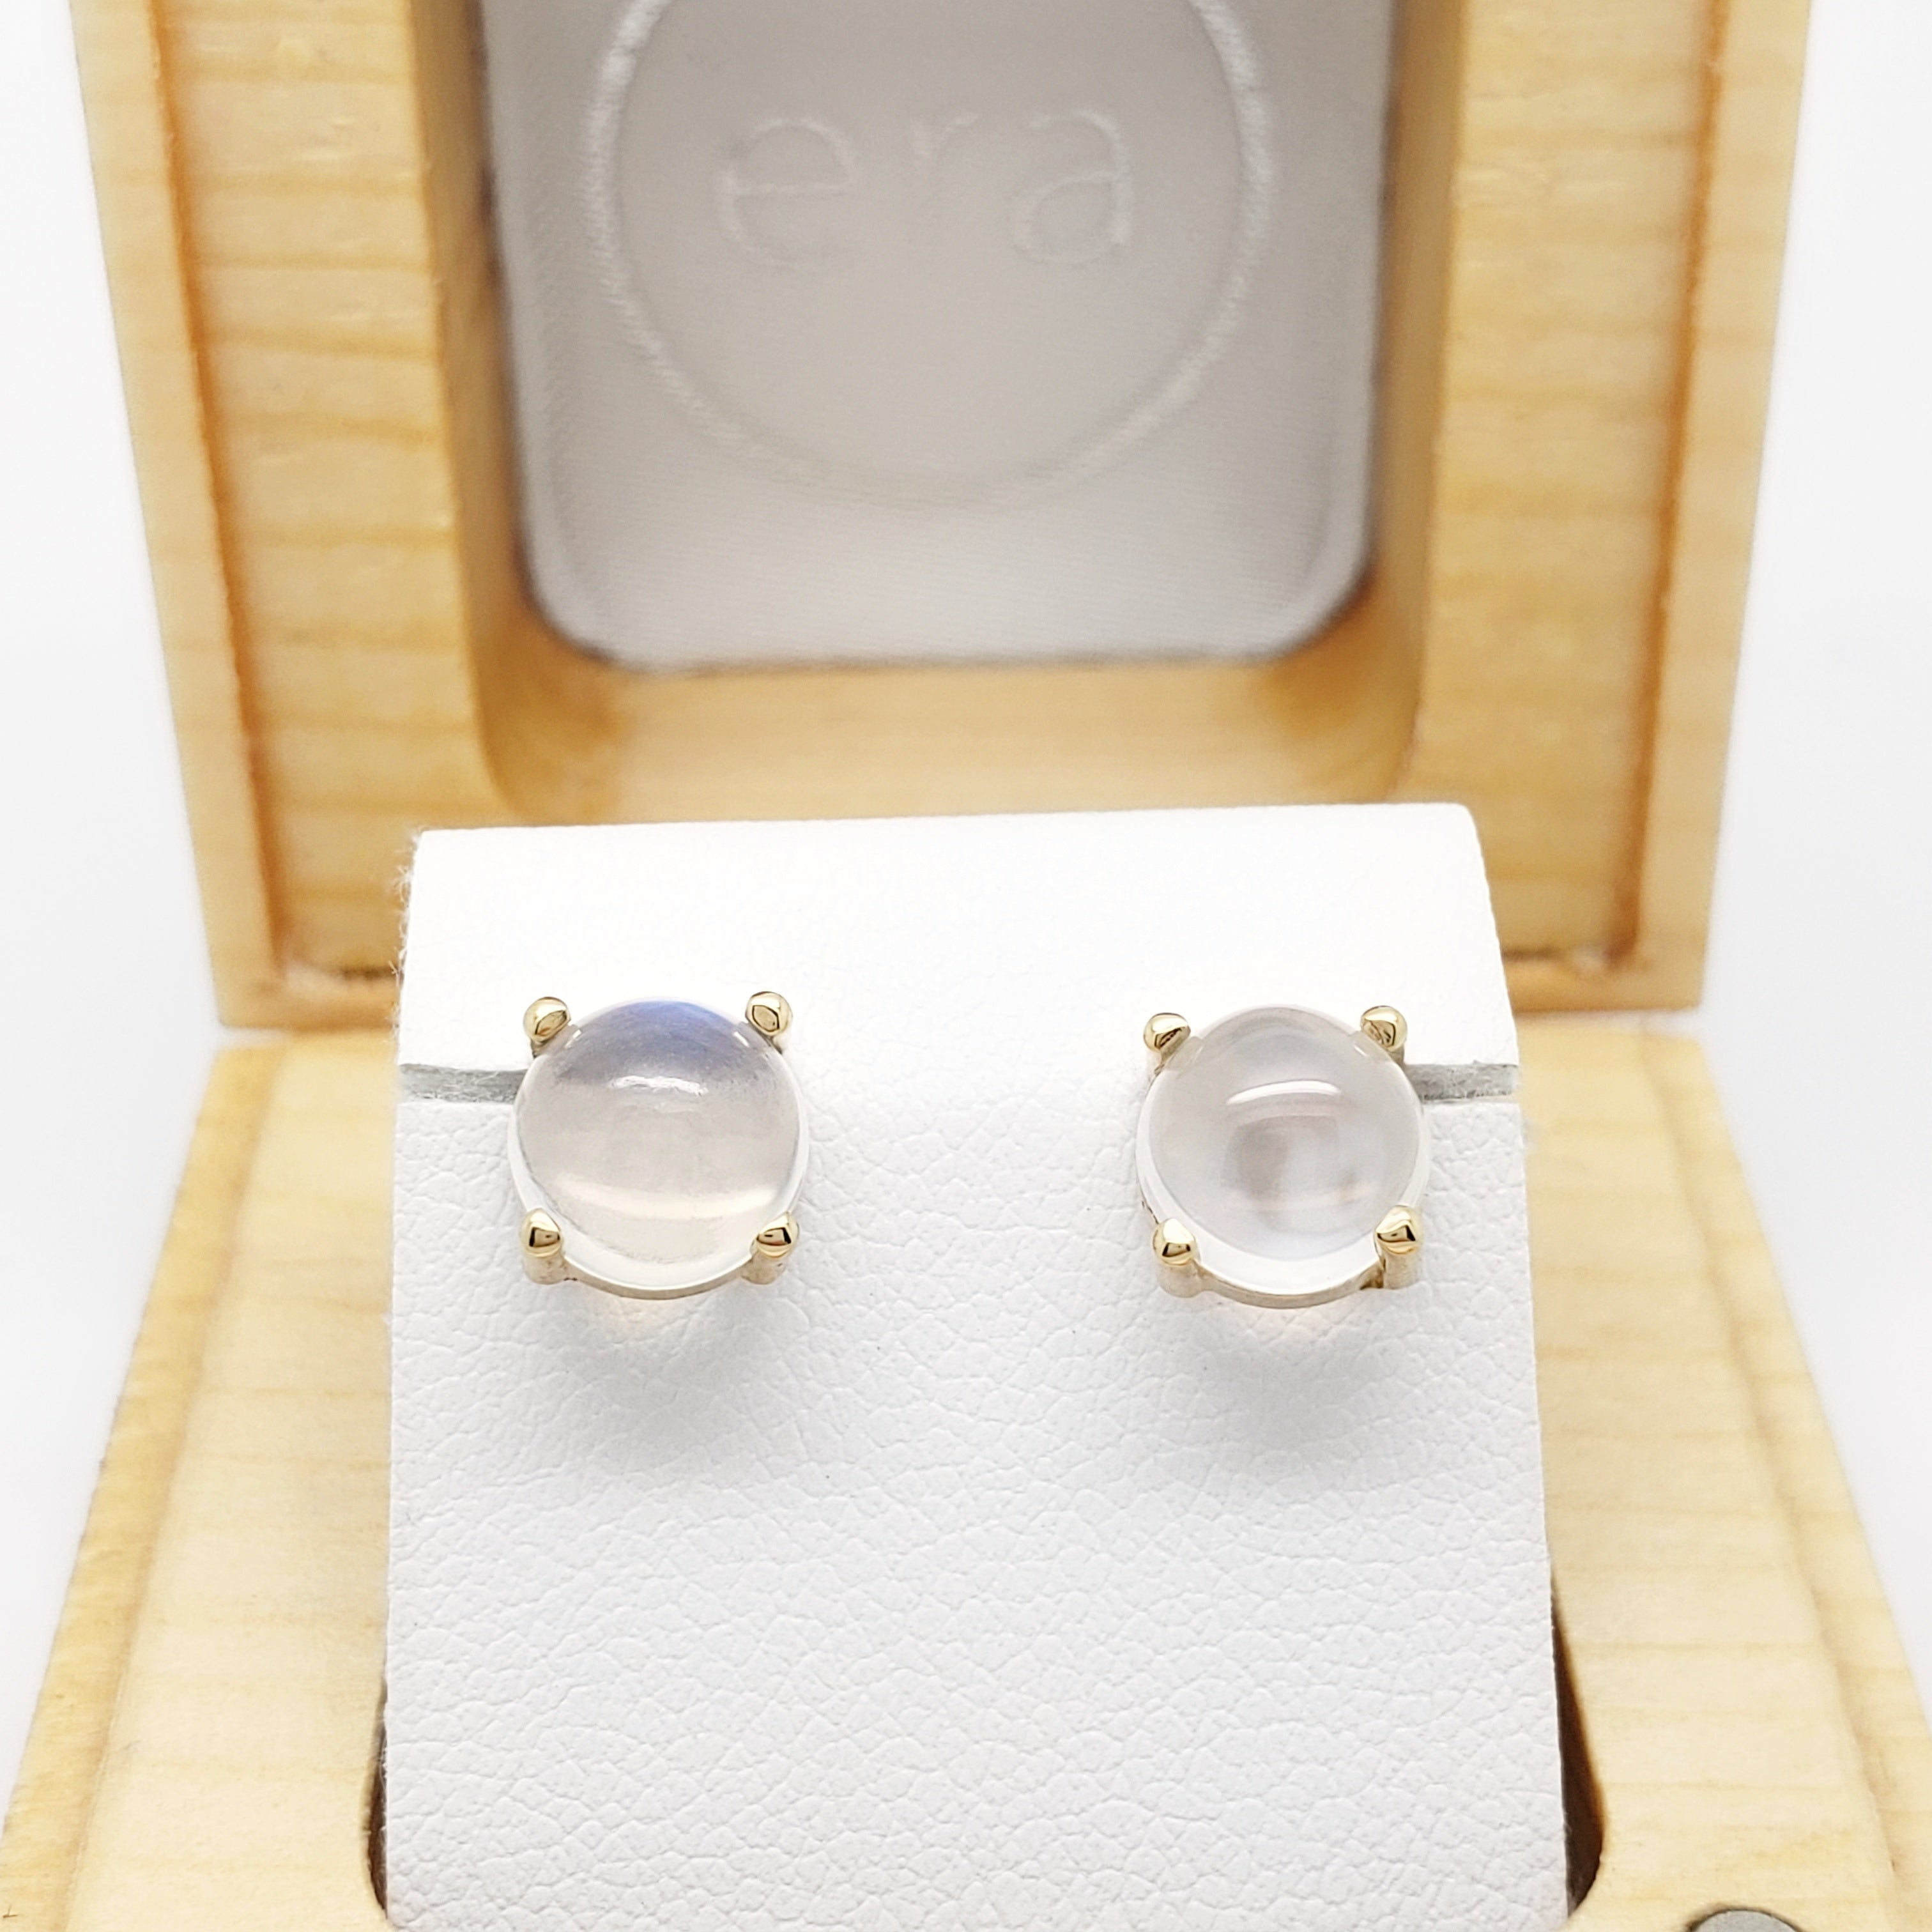 Moonstone Earrings | Era Design Vancouver Canada